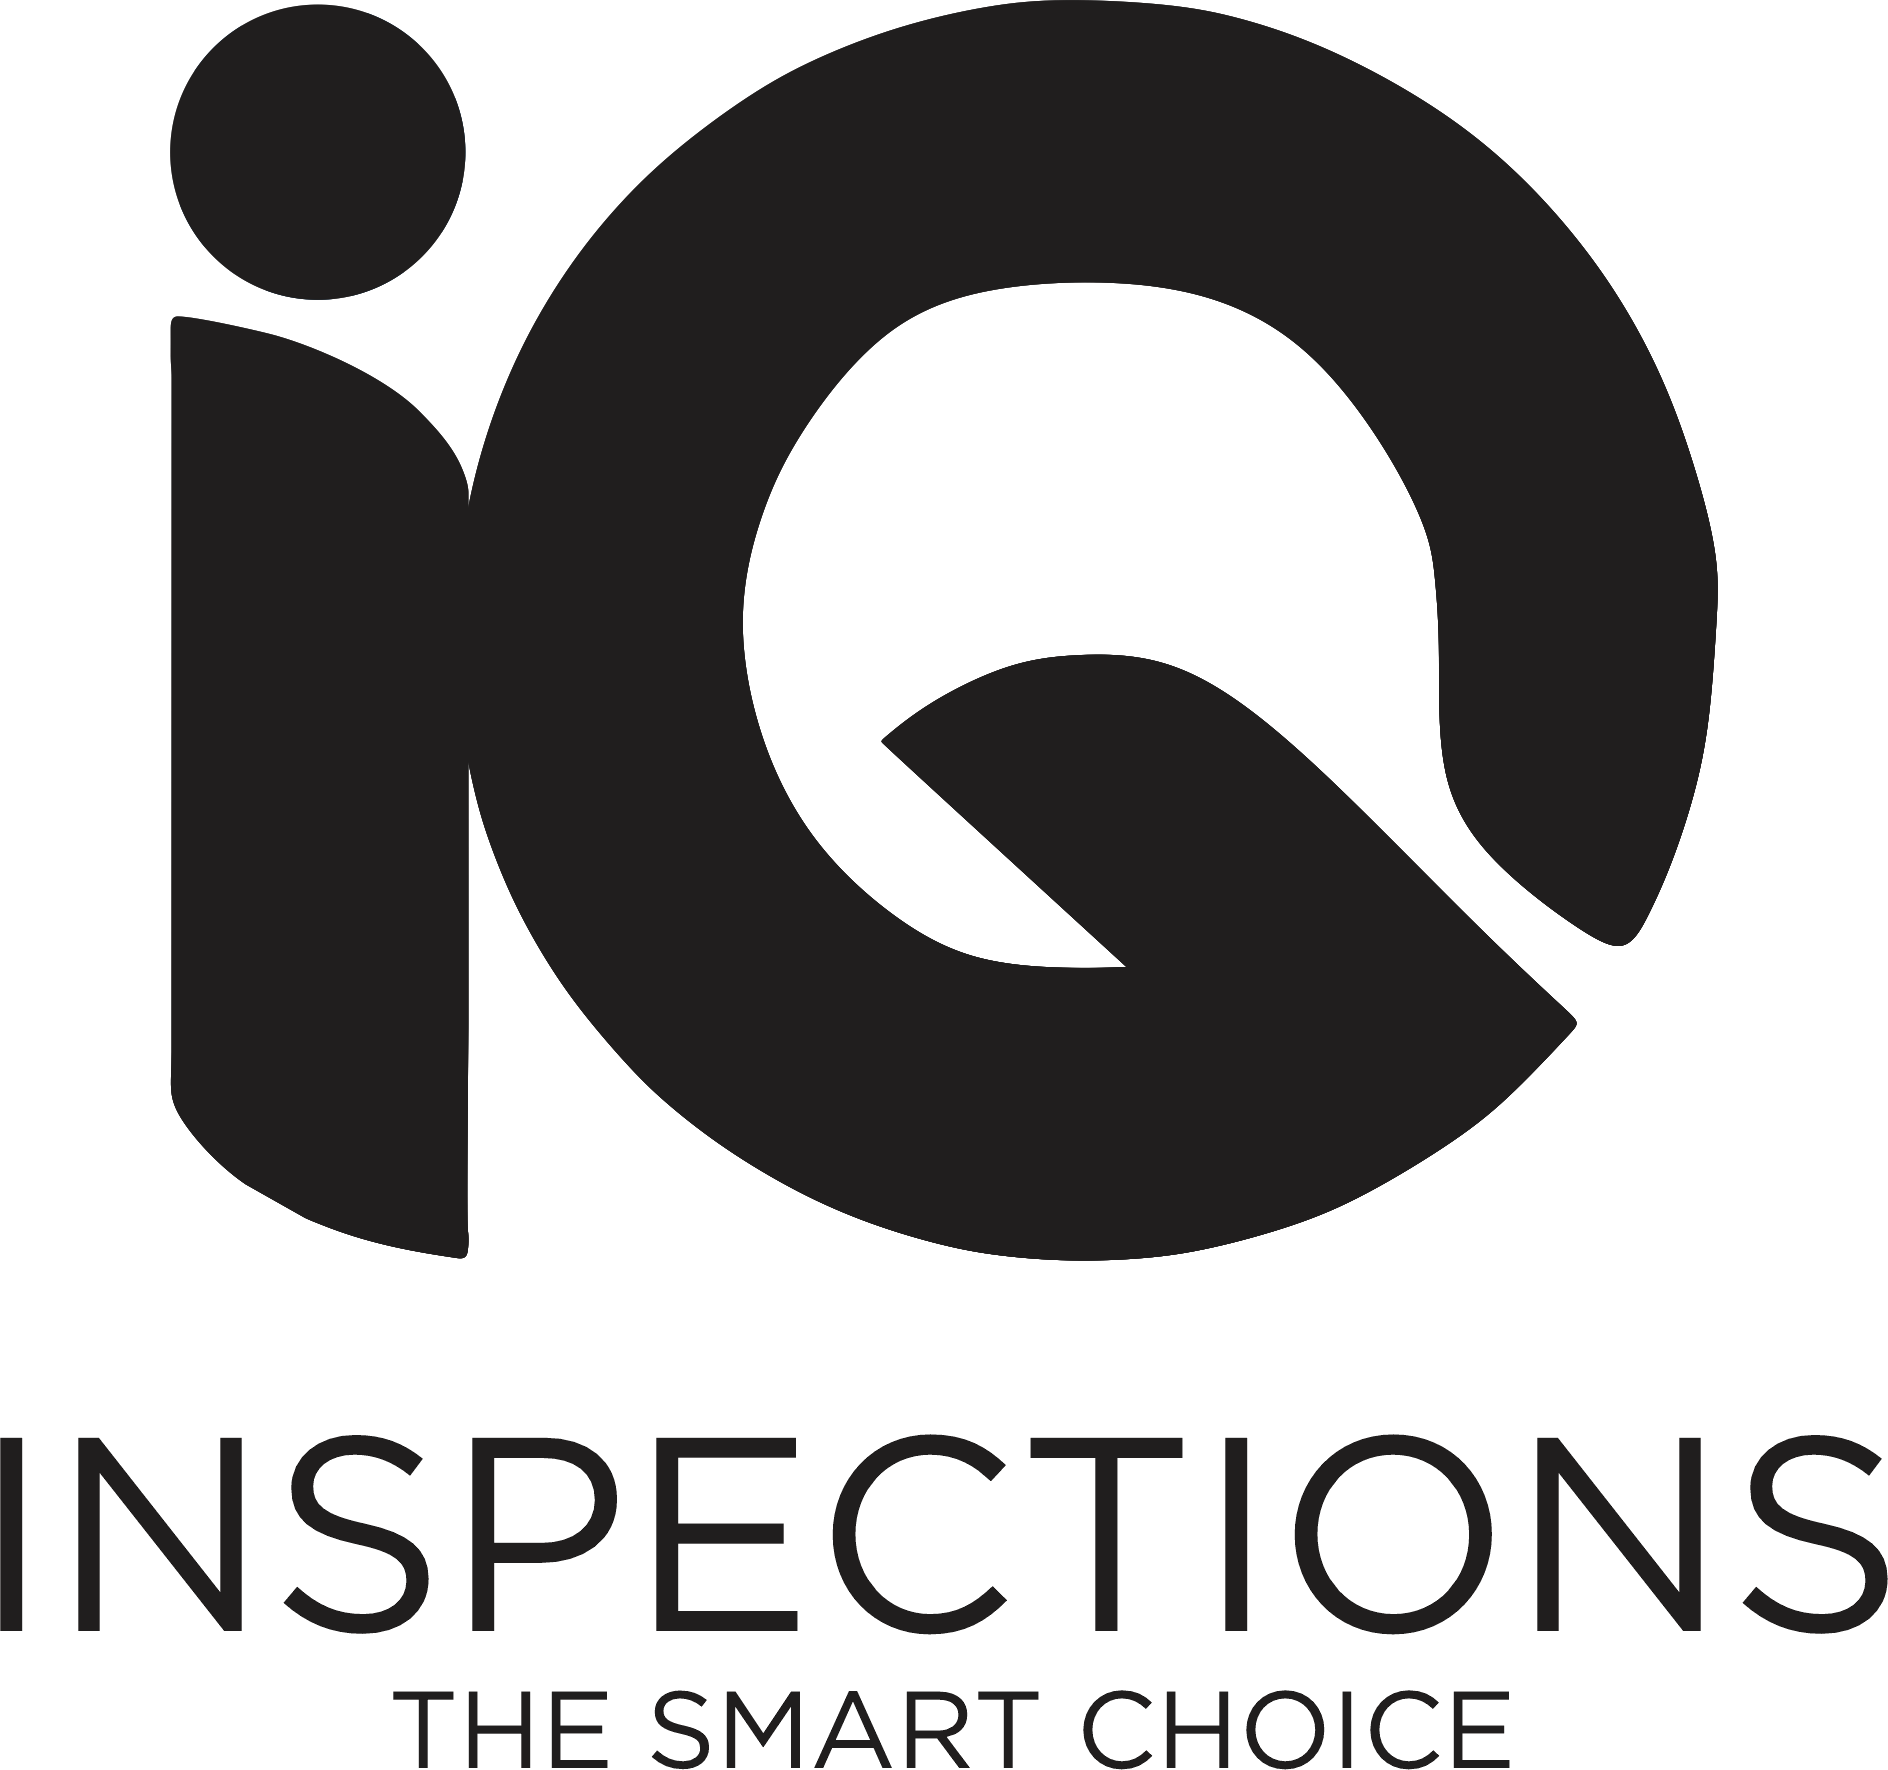 The IQ Inspections logo, clicking here refreshes the homepage